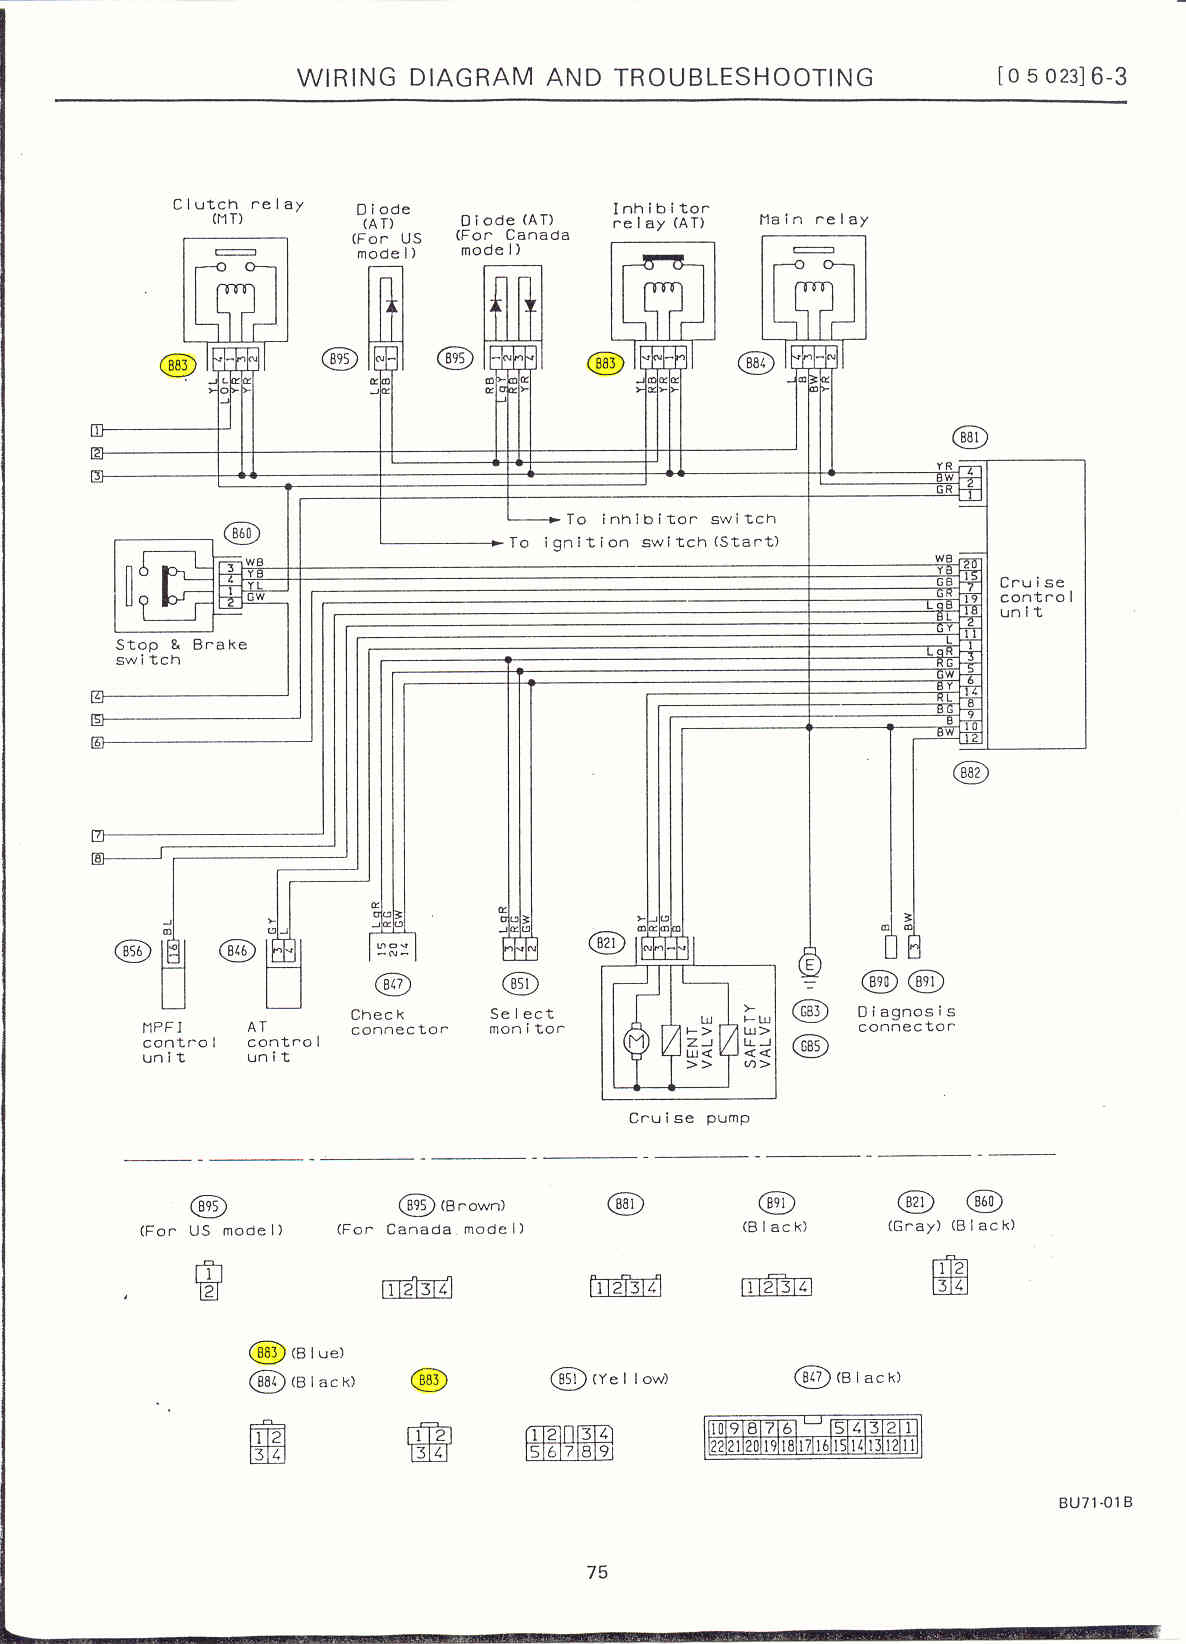 sel engine wiring diagrams with 1996 Subaru Legacy Bg5 Ecu Wiring Diagram on Mercedes Sel Engine Wiring Diagram additionally 2011 Ford Fusion Ac Wiring Diagram furthermore 86 Chevy Sel Fuel System Diagram in addition Perkins 4 108 Engine Parts Catalog moreover Cross Section Wiring Harness.